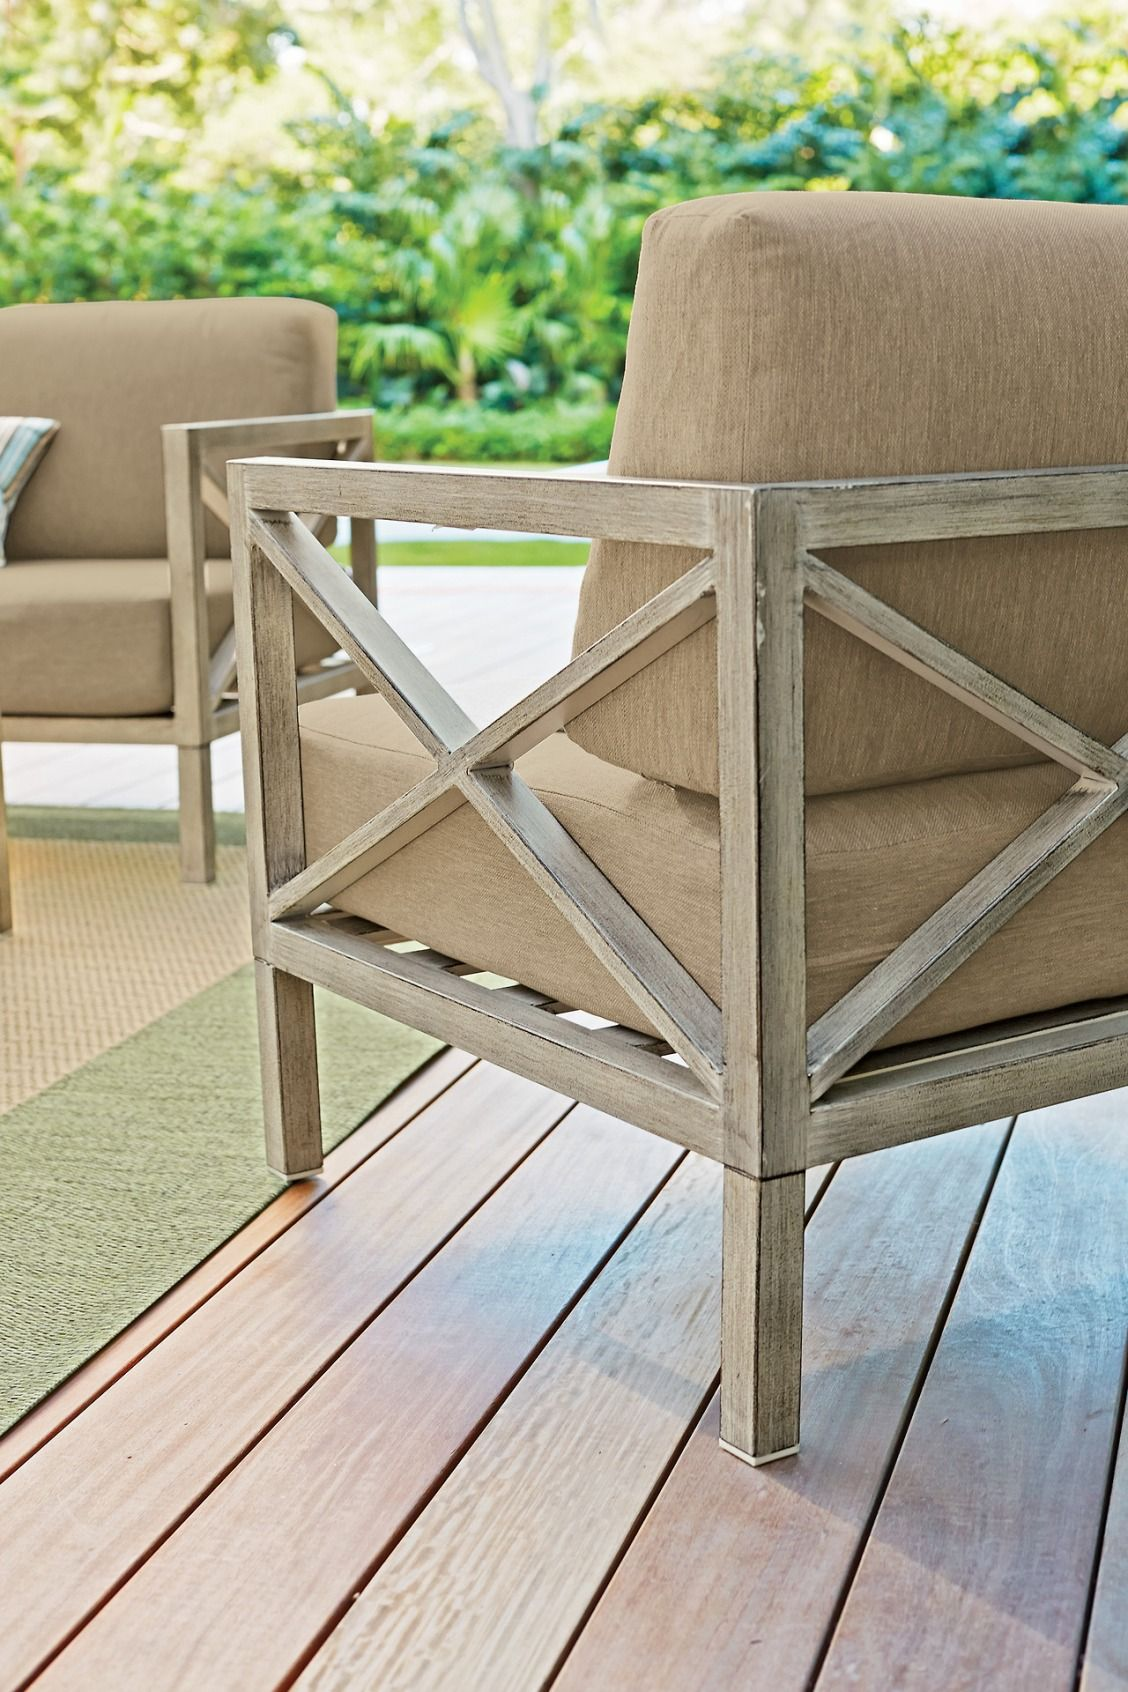 Keep It Simple Outdoor Furniture With Minimalist Style Simply Stunning